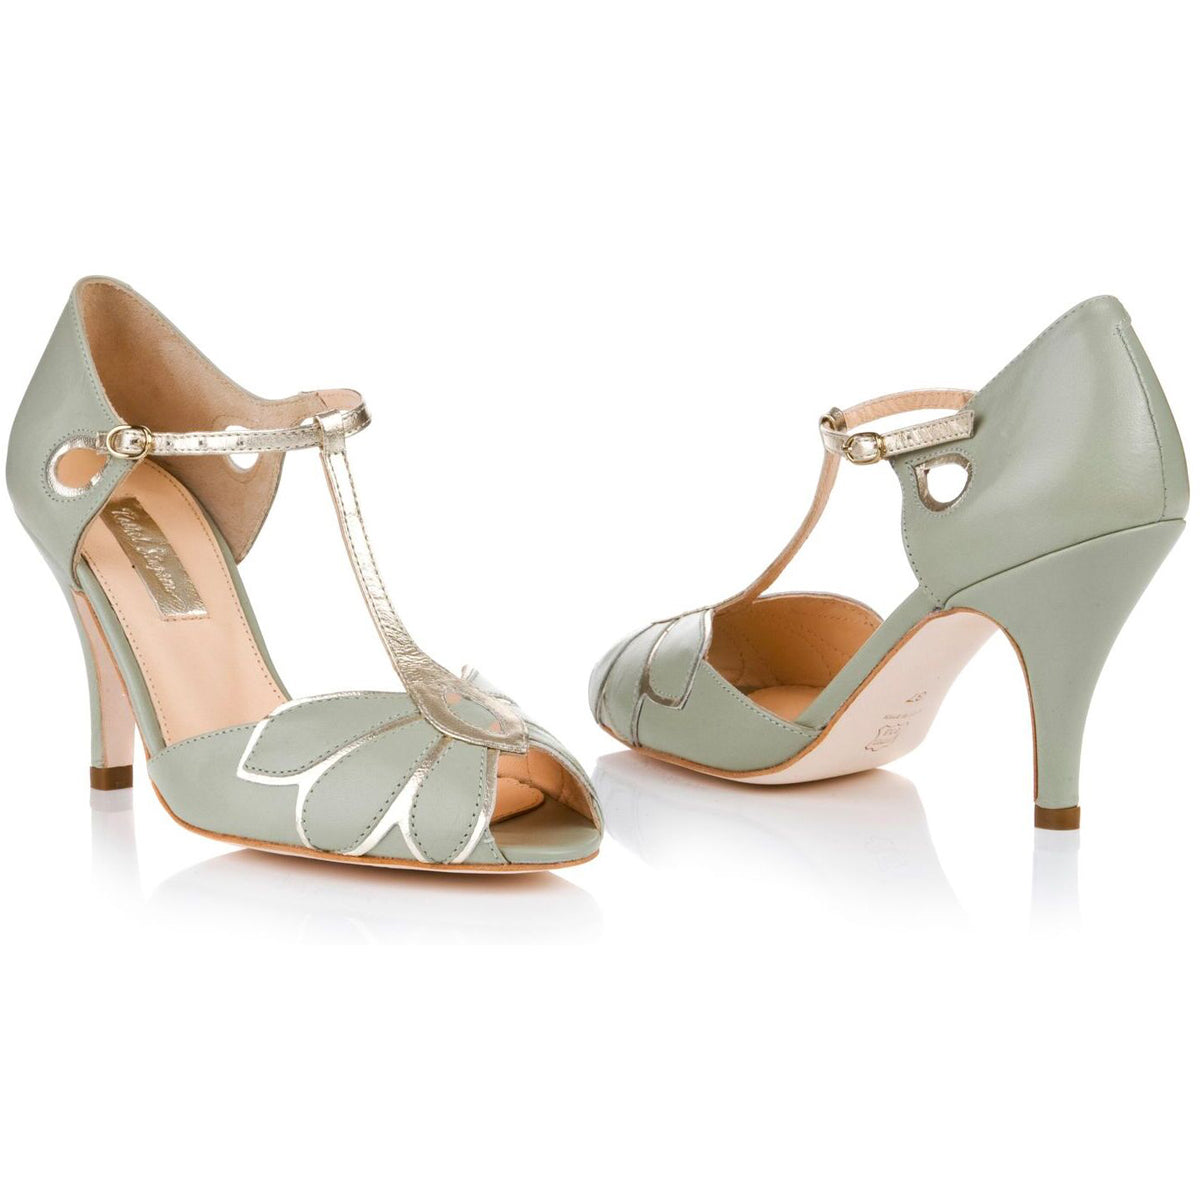 Rachel Simpson Peep Toe Mimosa Wedding Shoes